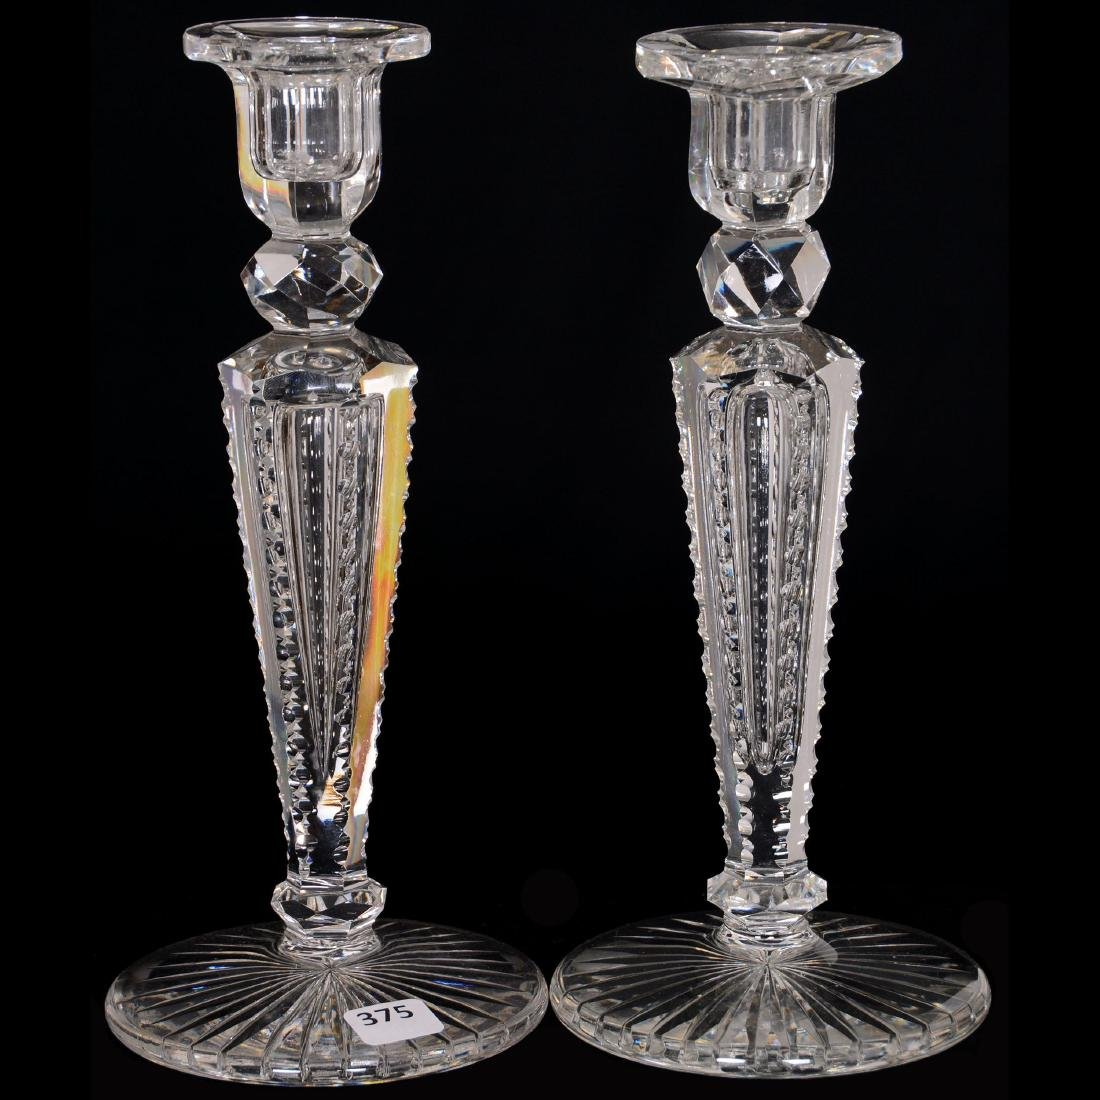 Pair Candle Holders - ABCG